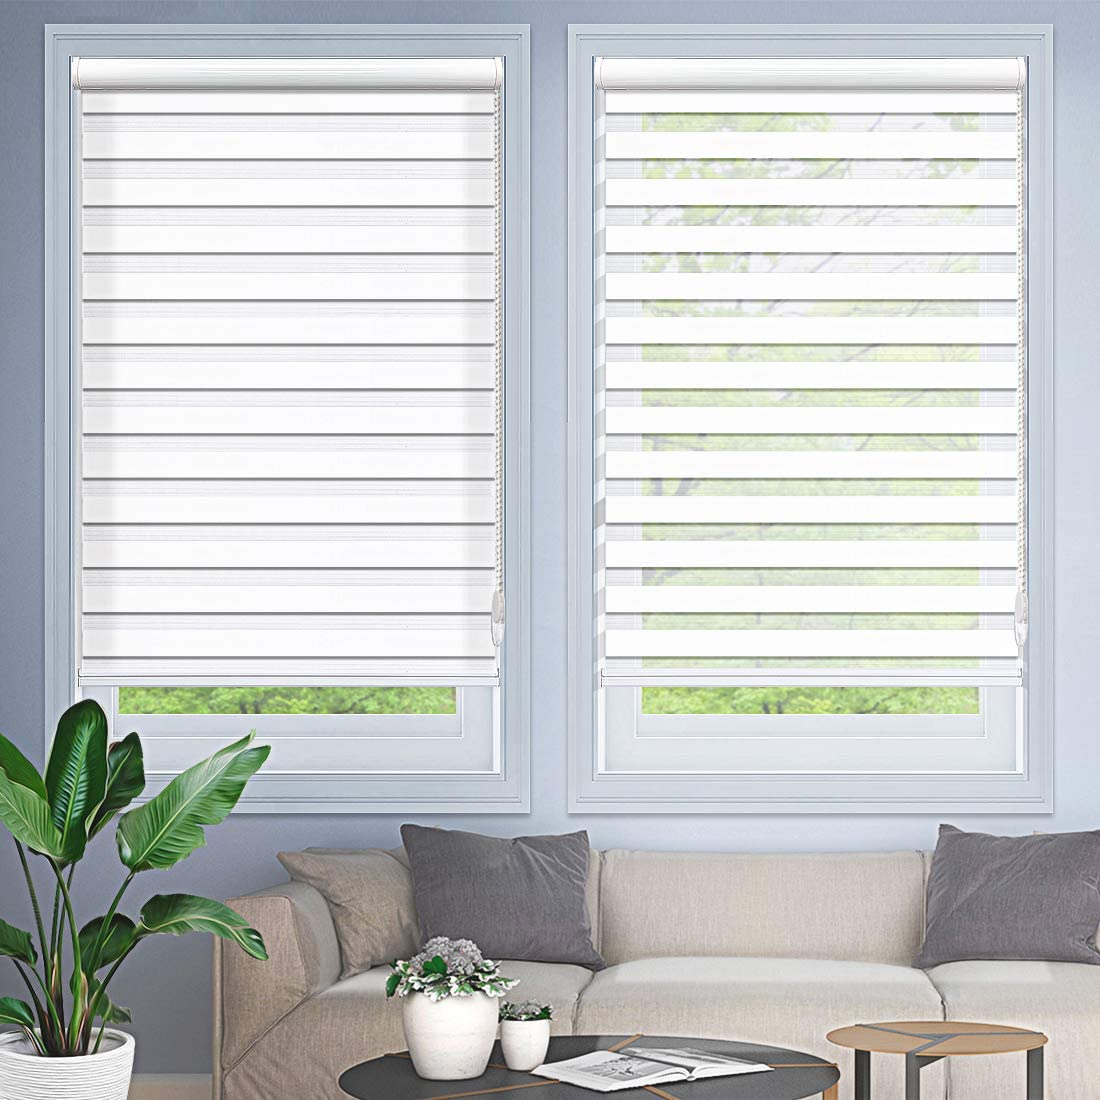 MiLin Window Blinds Zebra Dual Sheer Shades Custom Cut to Size, Light Filtering Zebra Roller Shades for Home Light Control and Privacy - Snow White 23